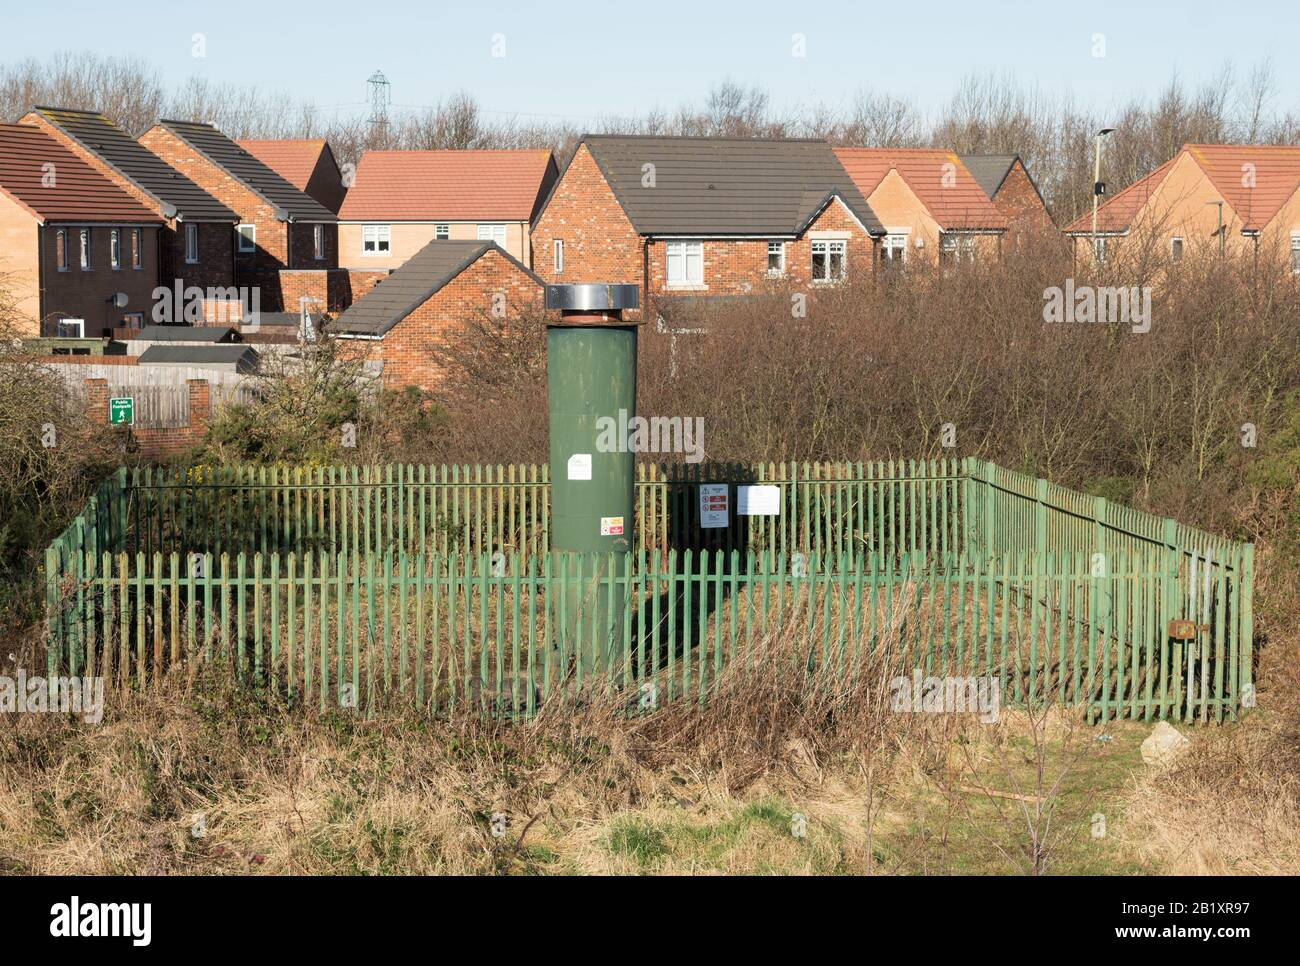 coal-mining-gas-vent-over-the-site-of-what-was-boldon-colliery-tyne-and-wear-england-uk-2B1XR97.jpg